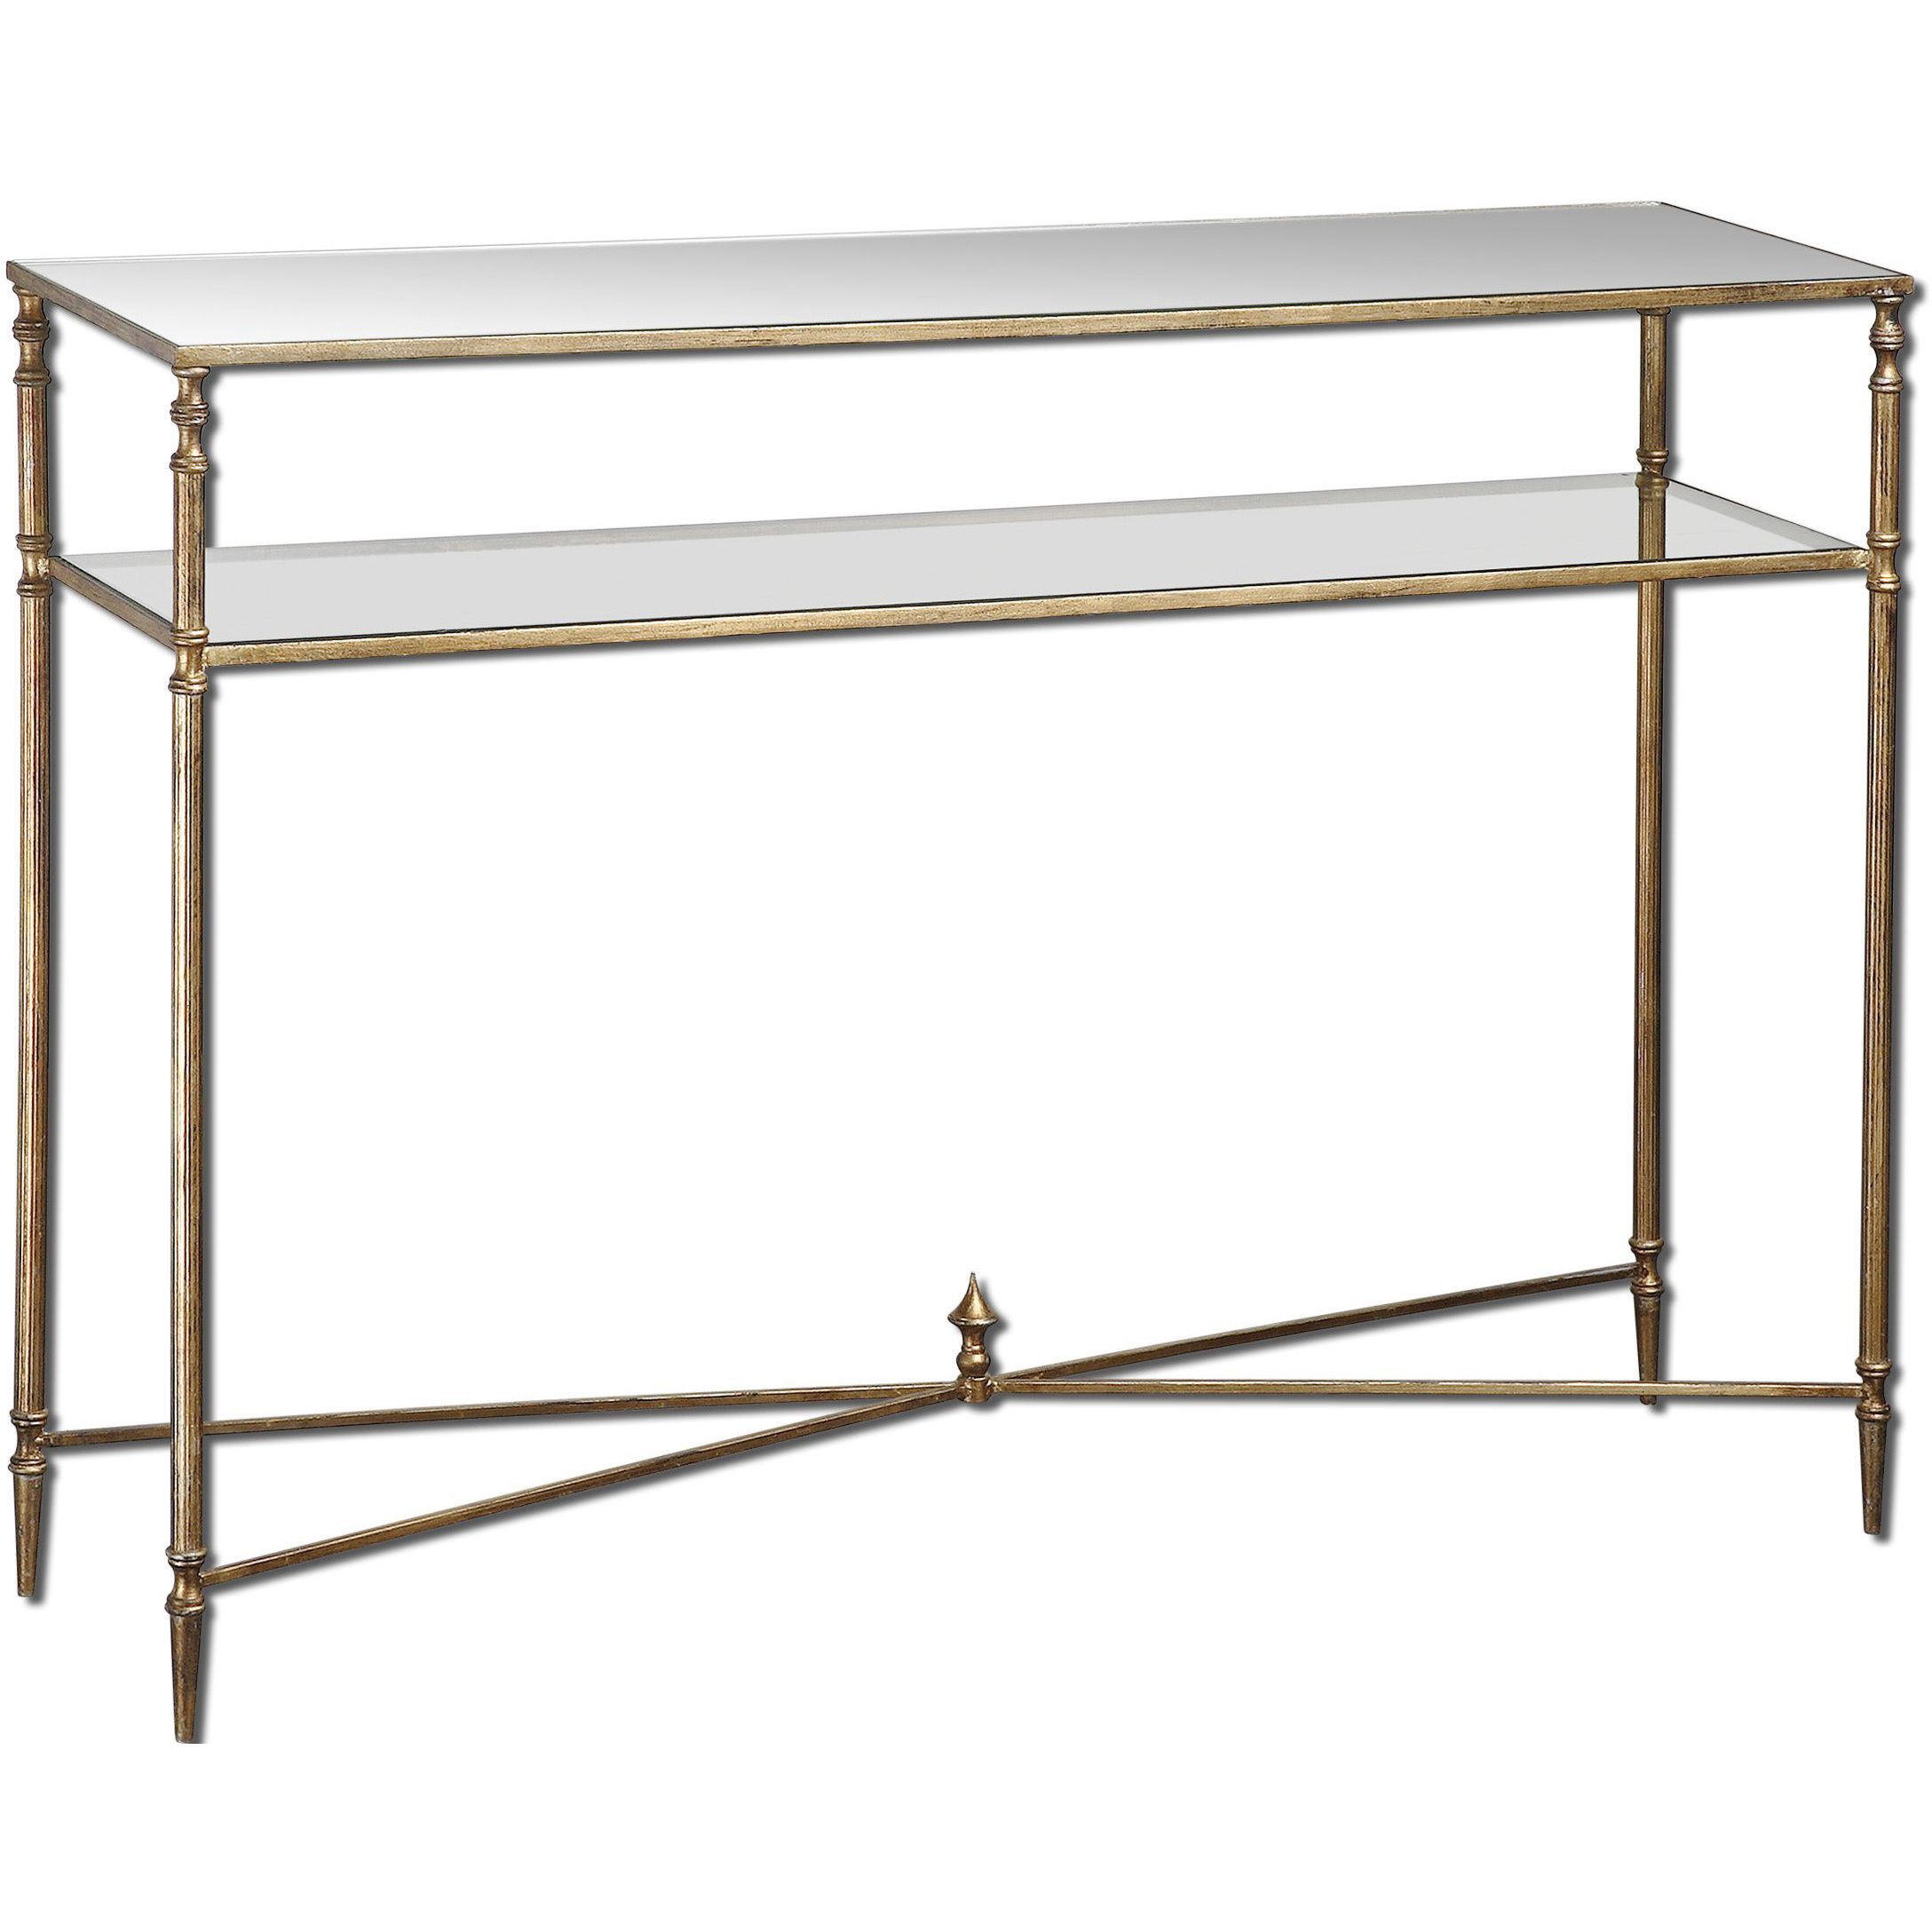 Glass console table with shelf uttermost henzler mirrored glass console table by uttermost